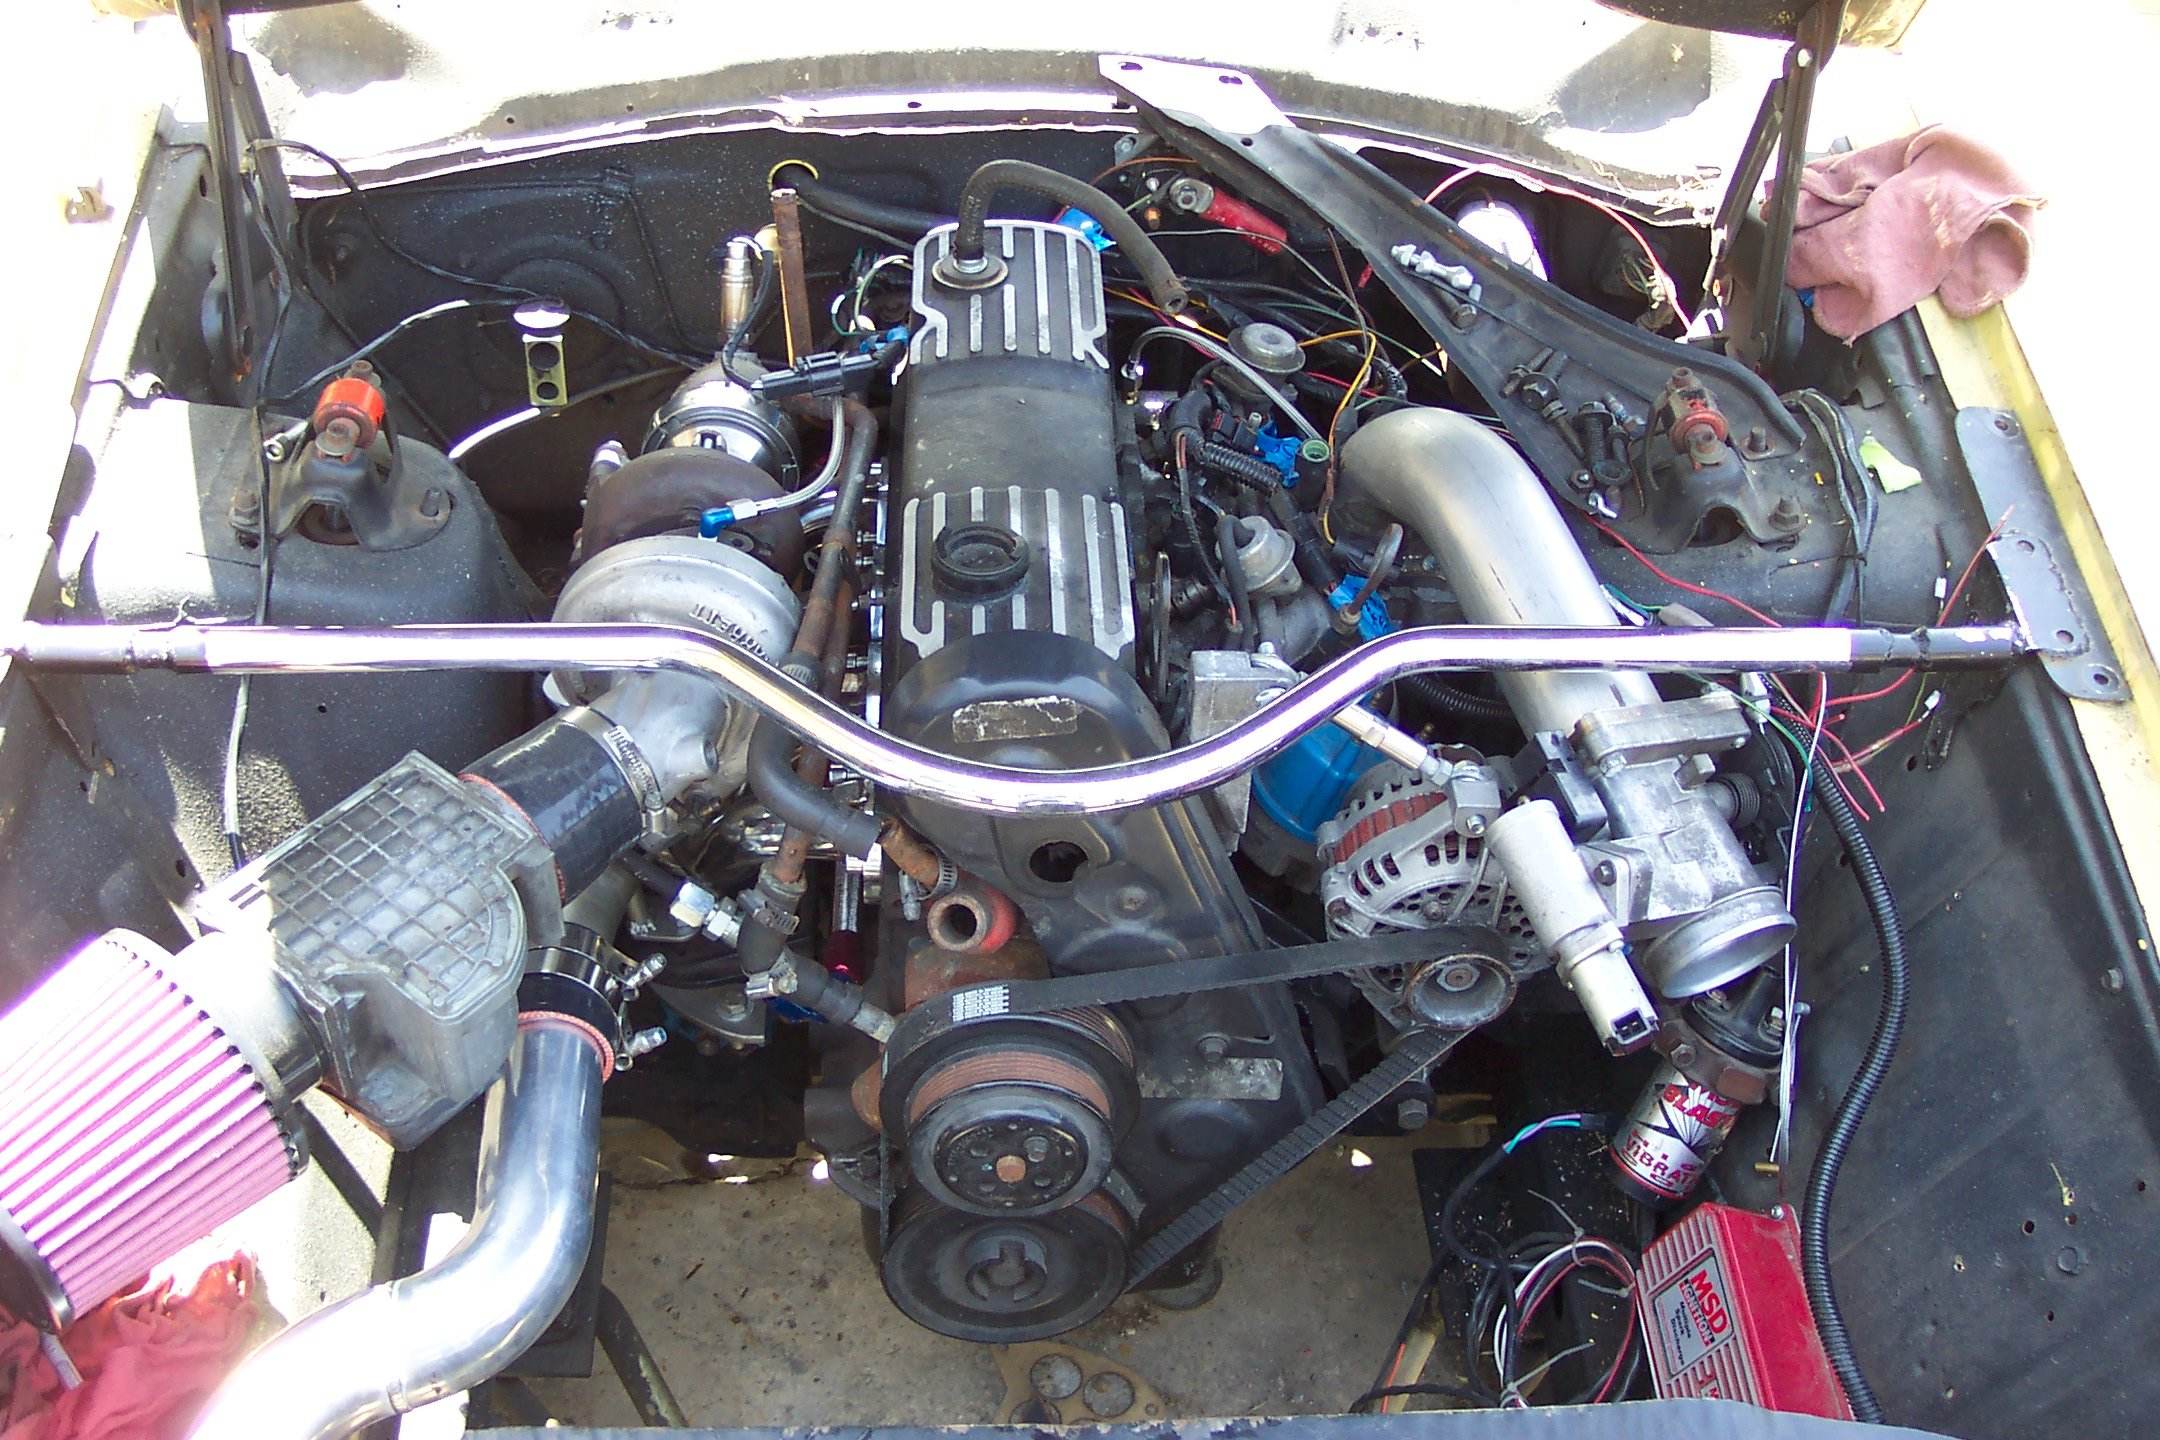 ... 2 3 turbo swap and wont start no low spark ford mustang forum ford f150  fuse ...